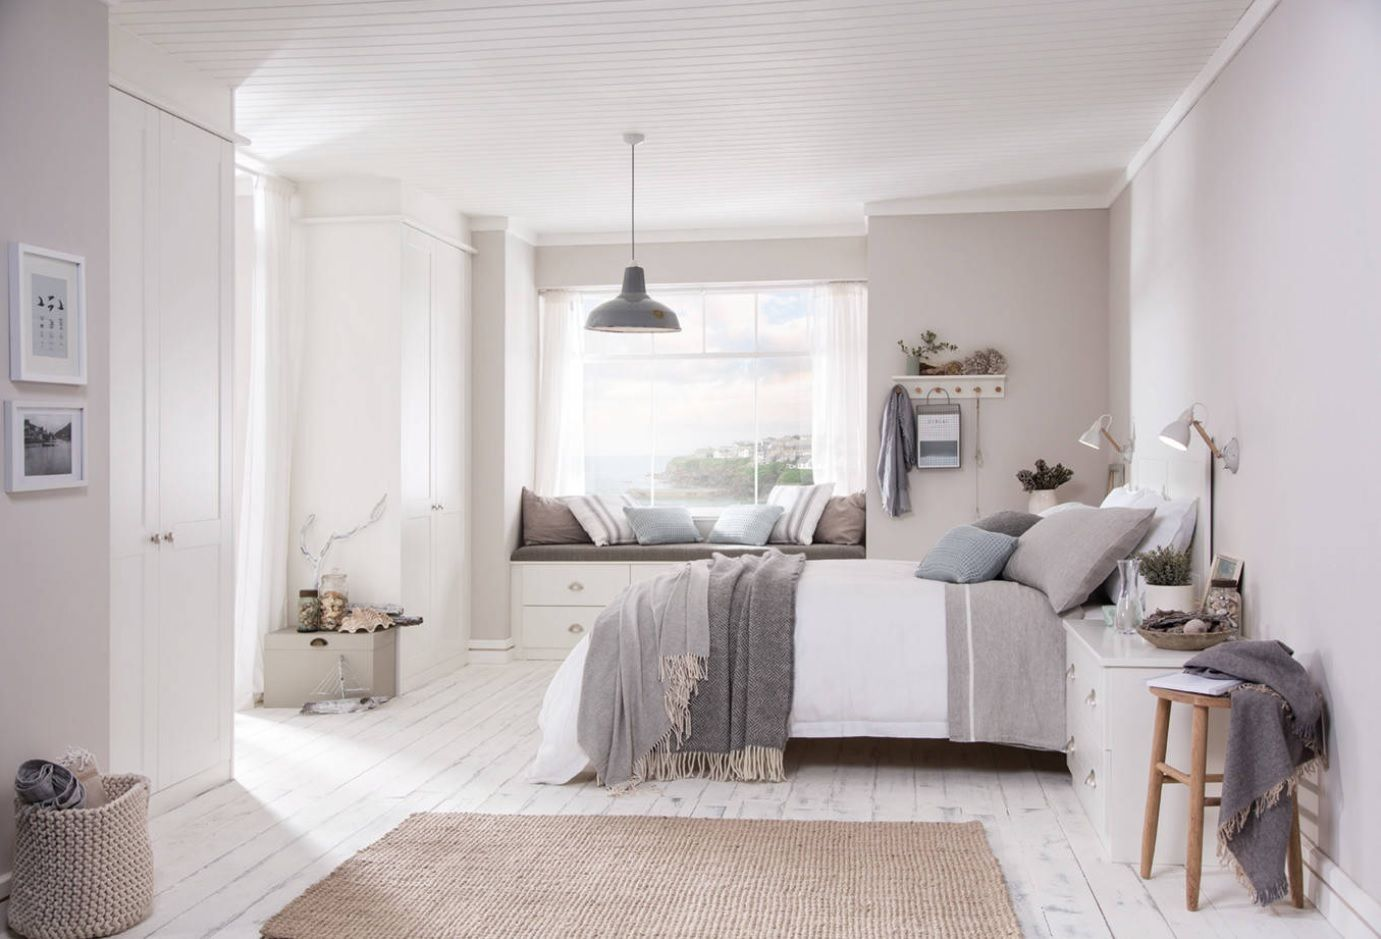 White Bedroom Furniture Set Ideas & Photos. Modern Scandinavian minimalism in creamy finished room